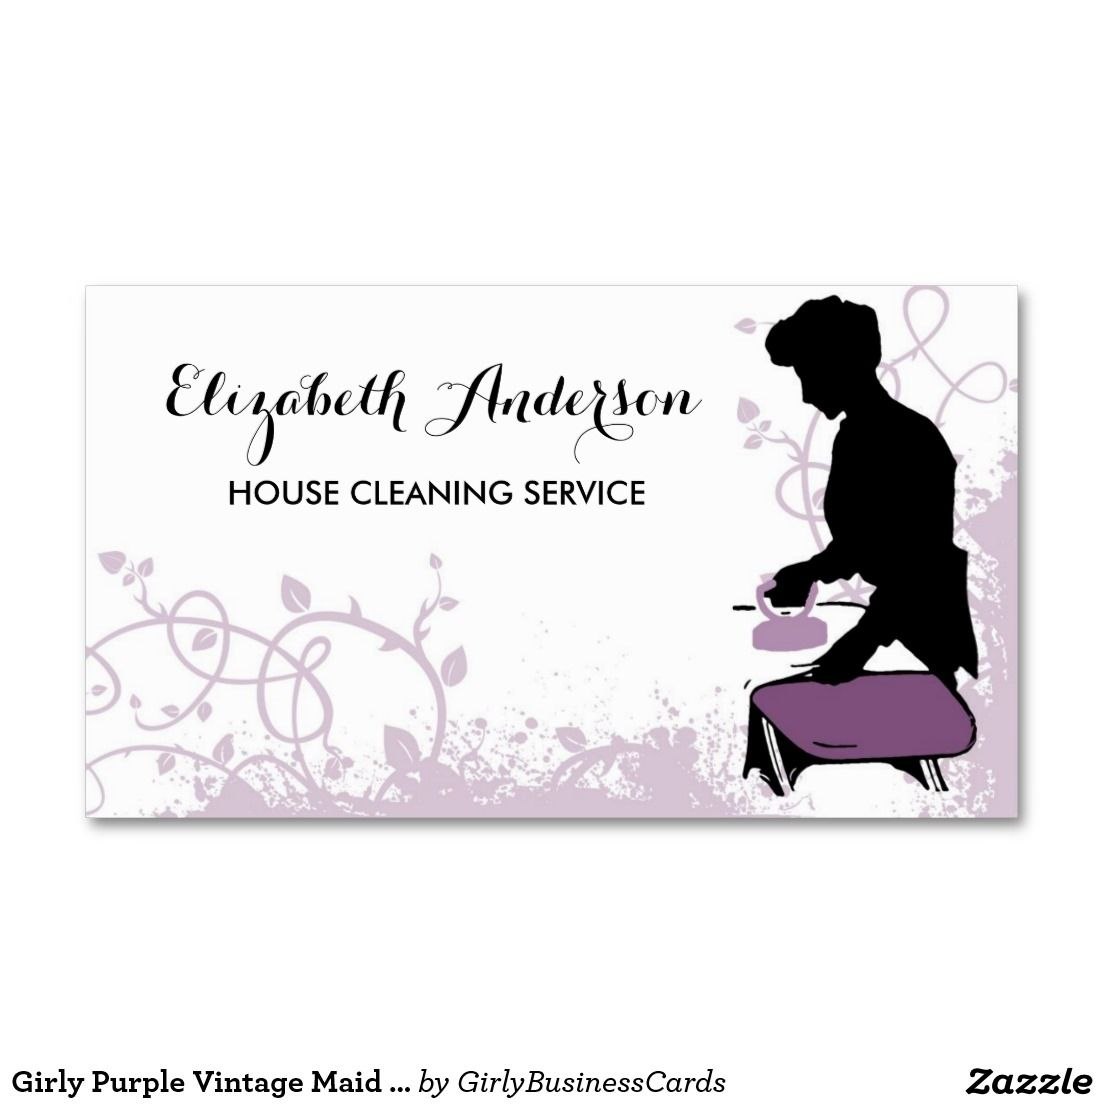 Maid business cards best man champagne toast business card cleaning services business cards cleaning services lady magicingreecefo Gallery